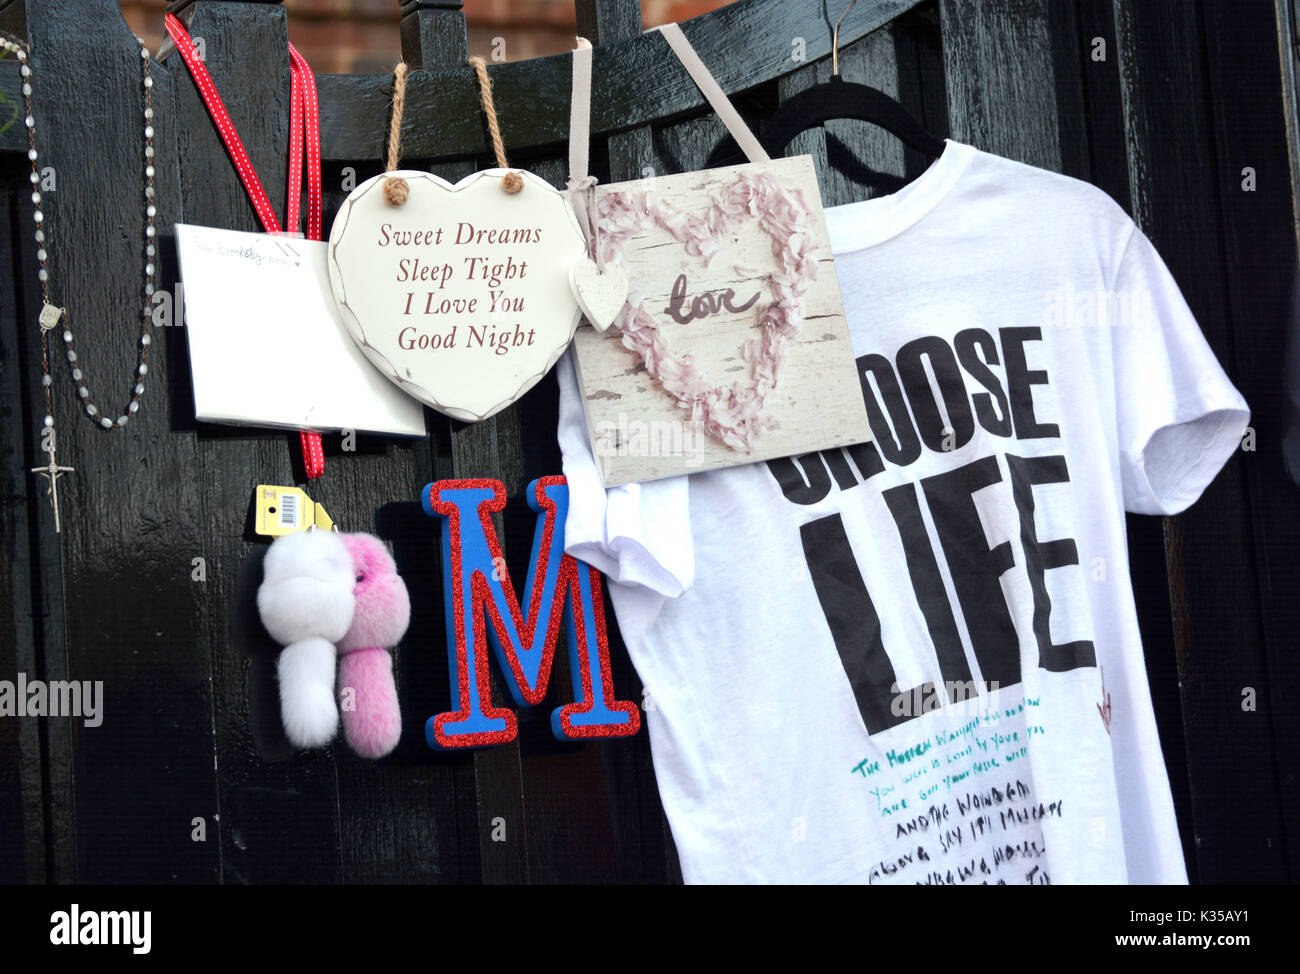 Photo Must Be Credited ©Alpha Press 066465 27/12/2016 Fans and mourners lay tributes as a memorial outside George Michael's home in Highgate, North London, the British singer passed away on Christmas Day 2016. - Stock Image